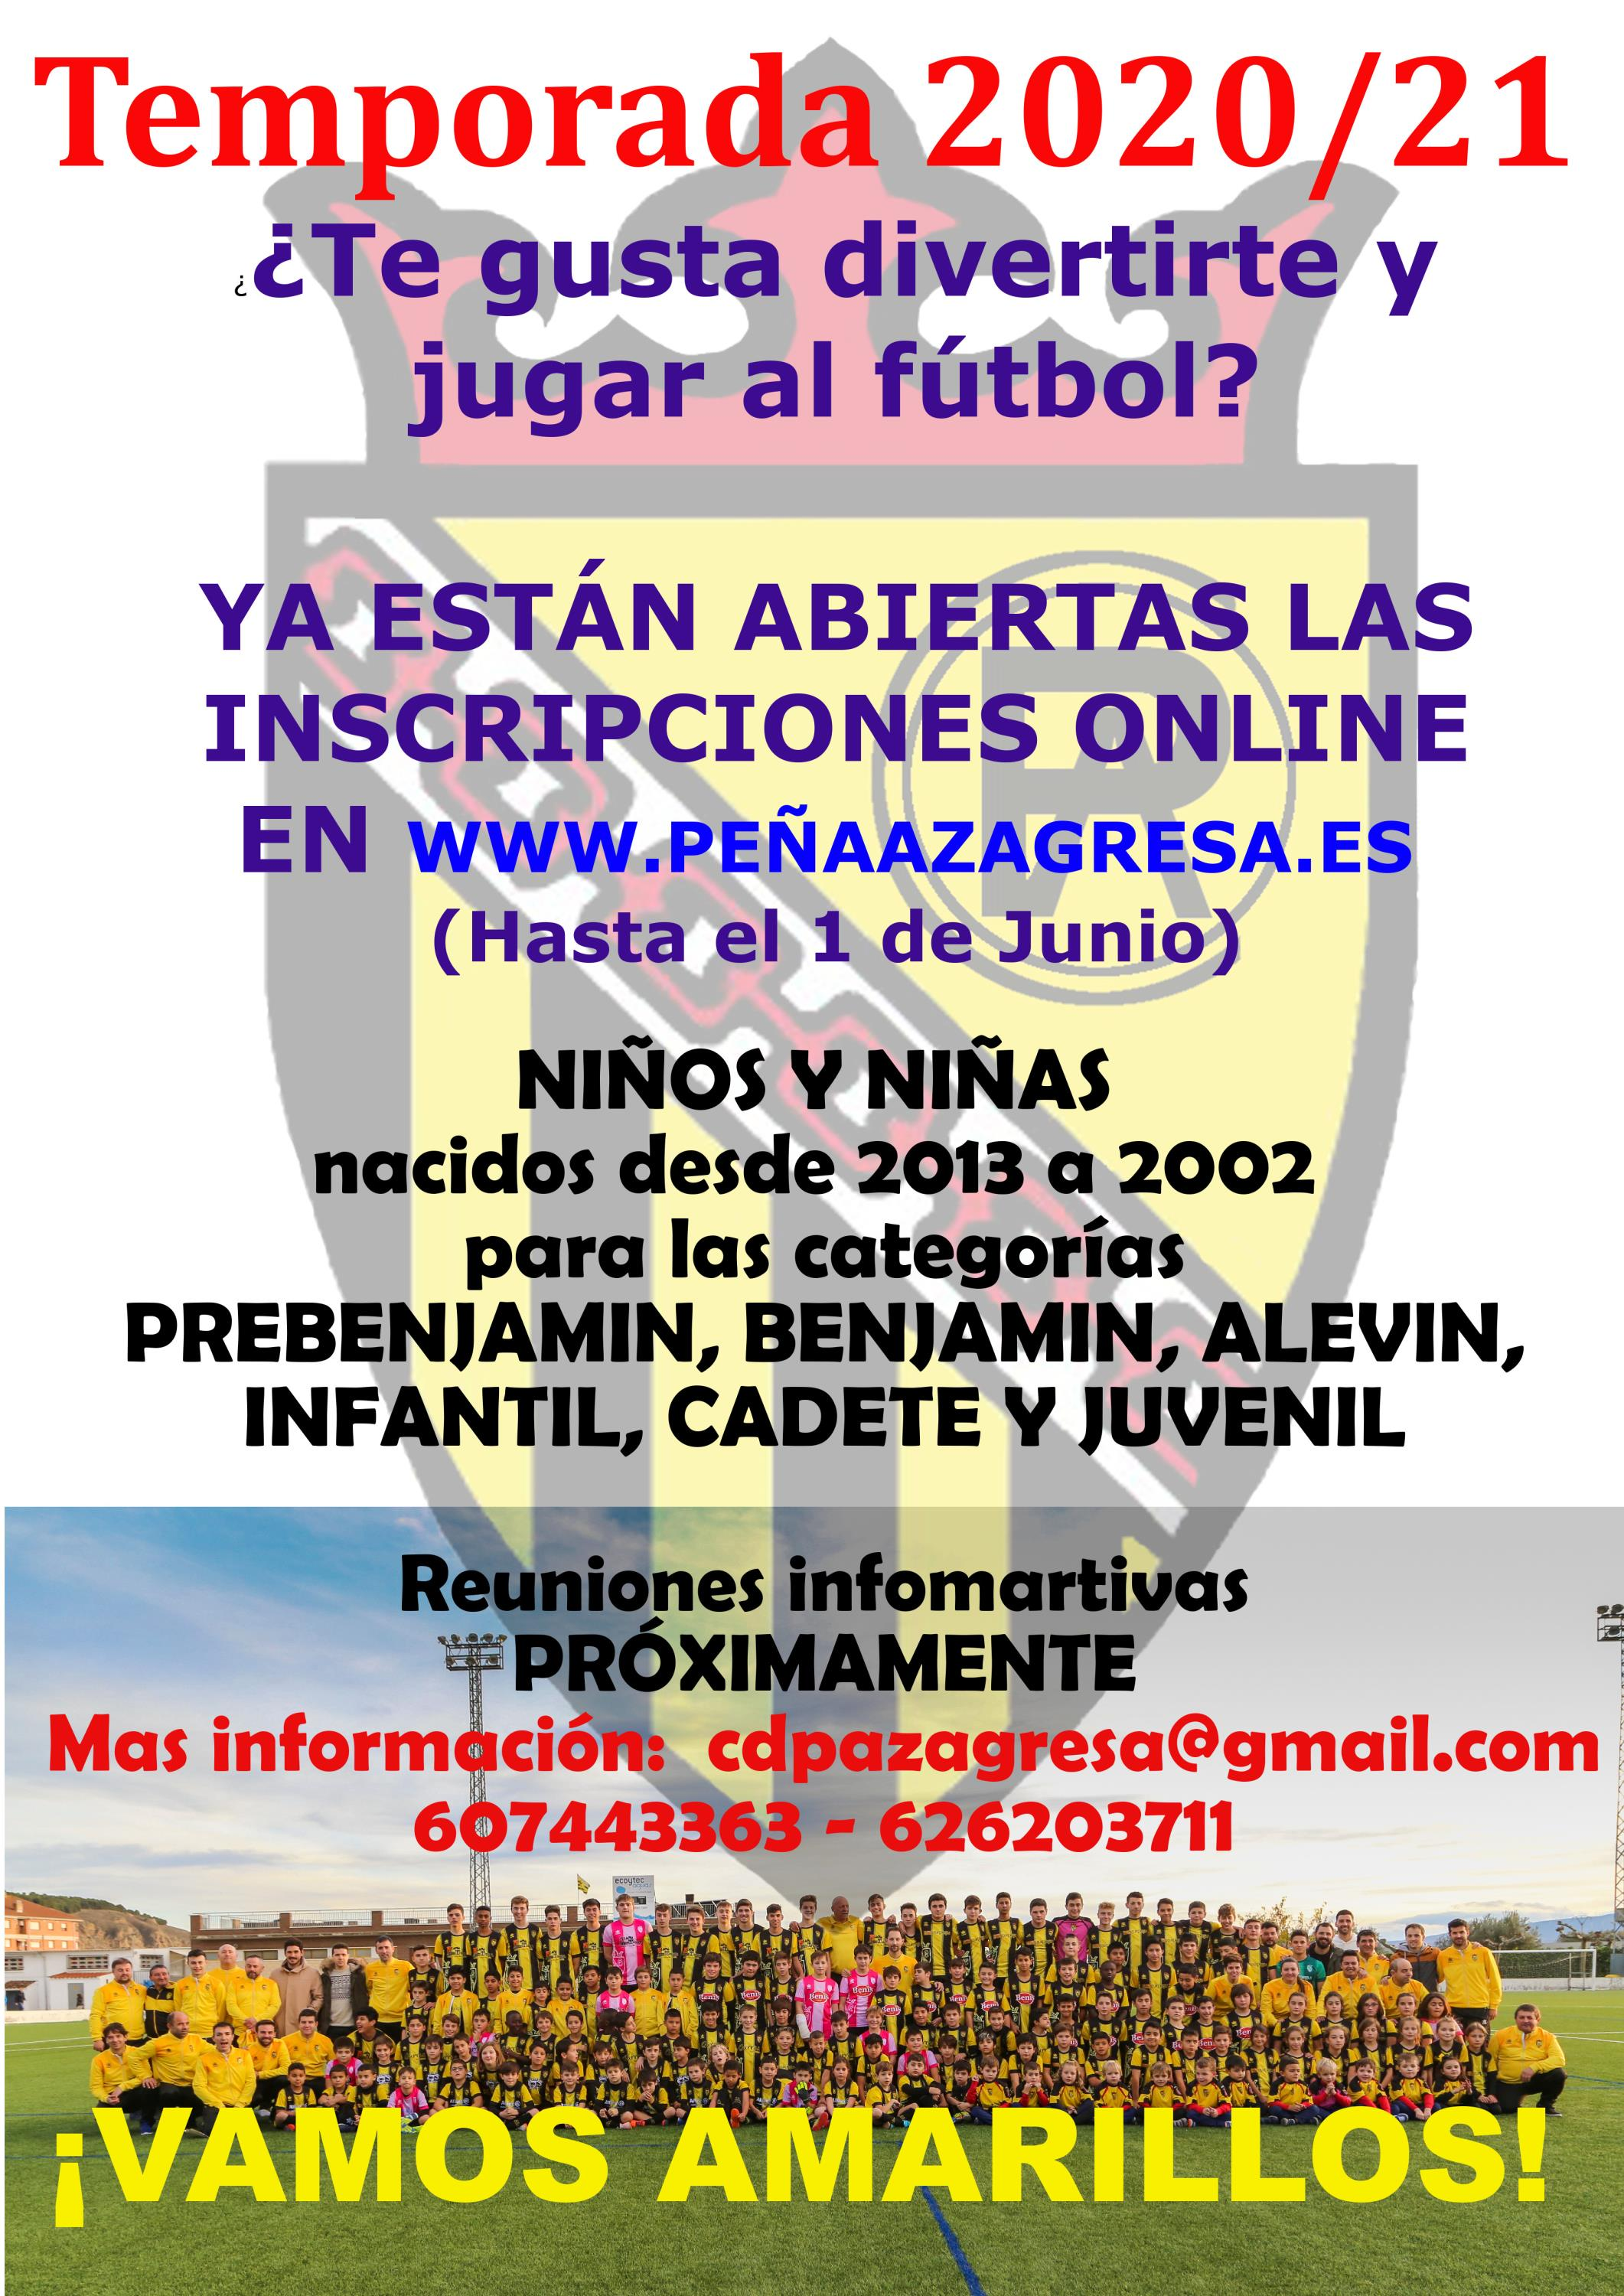 sdsAbiertas INSCRIPCIONES (on-line) en el fútbol base para la Temporada 2020/21